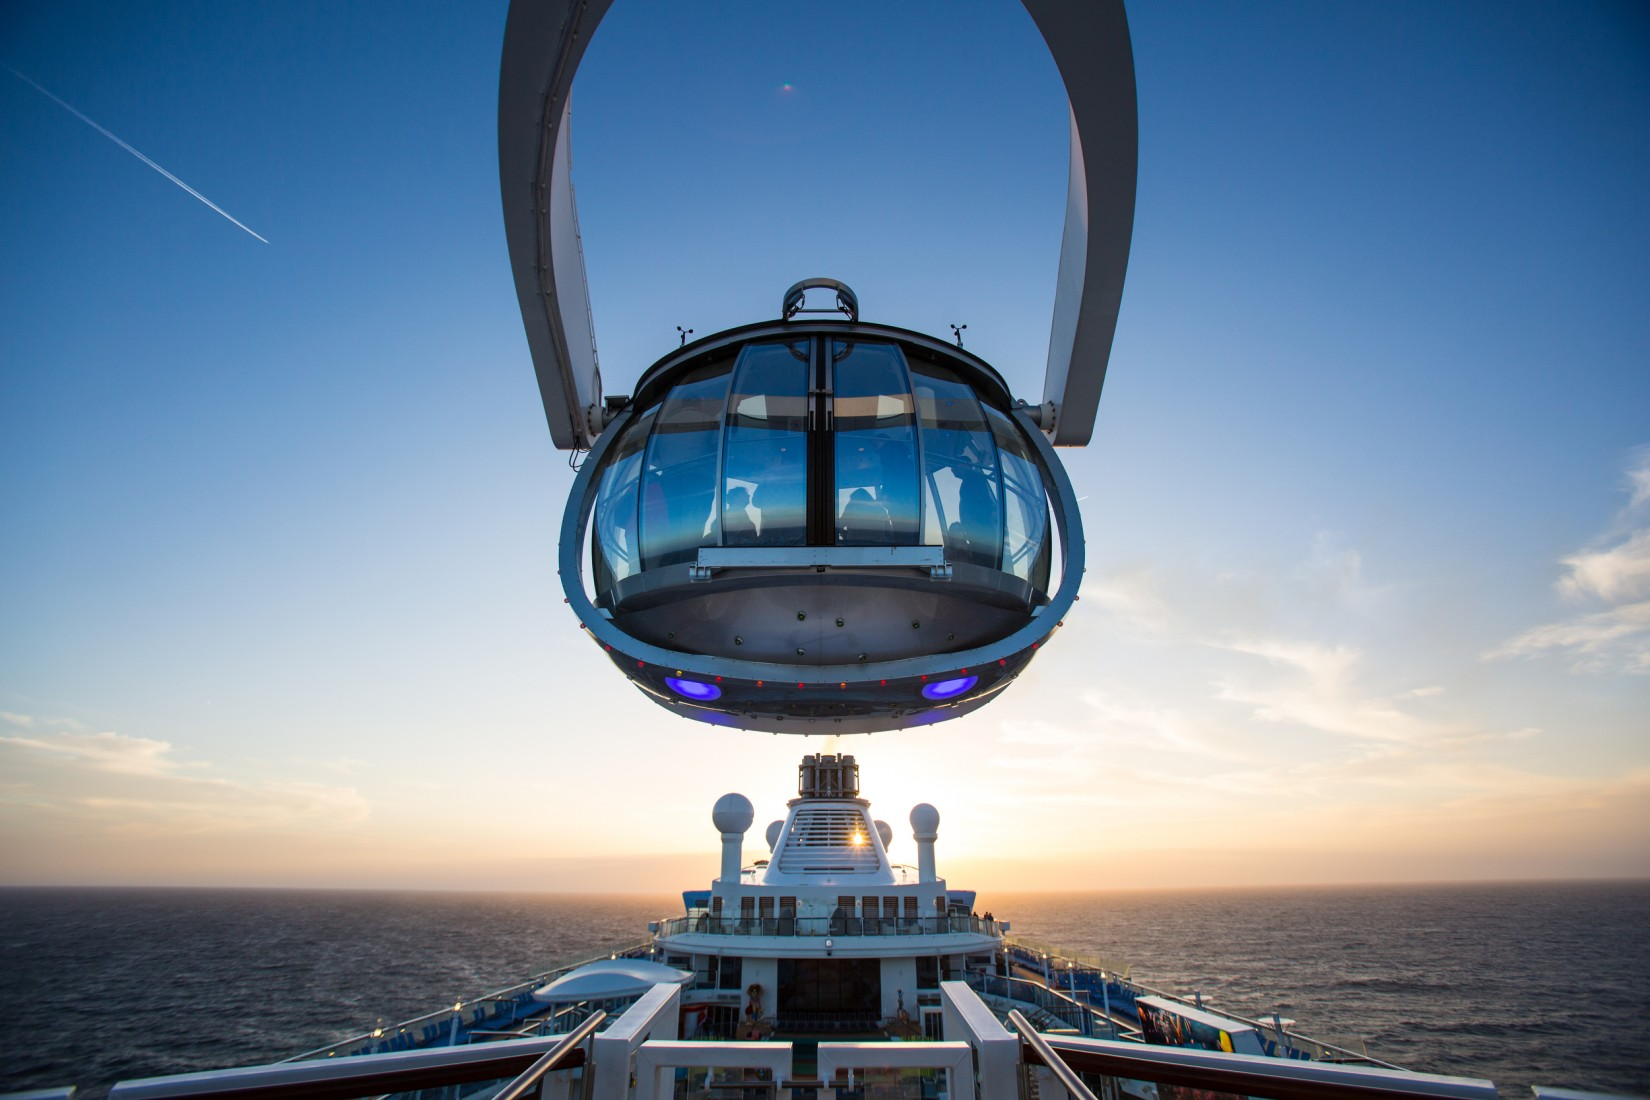 Royal Caribbean International launches Quantum of the Seas, the newest ship in the fleet, in November 2014. The North Star at sunset